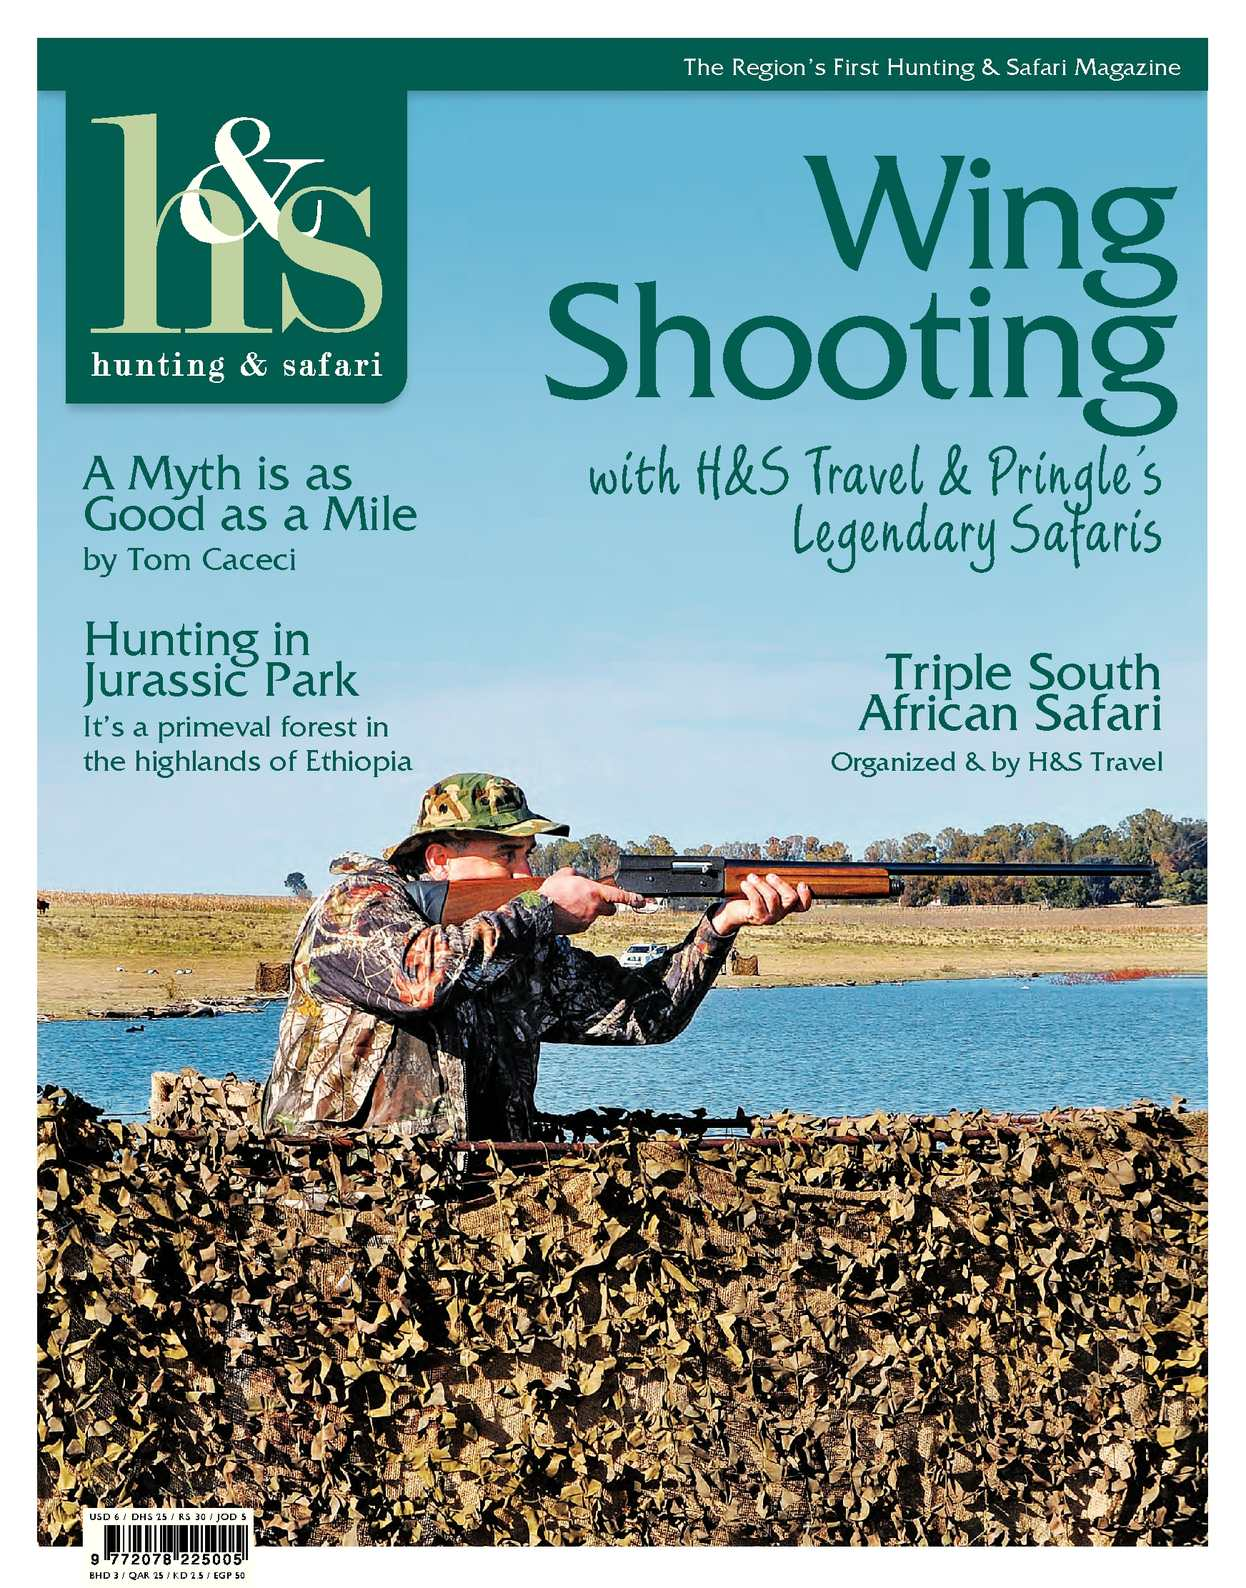 Calaméo - h&s Hunting and Safari Magazine Issue 14